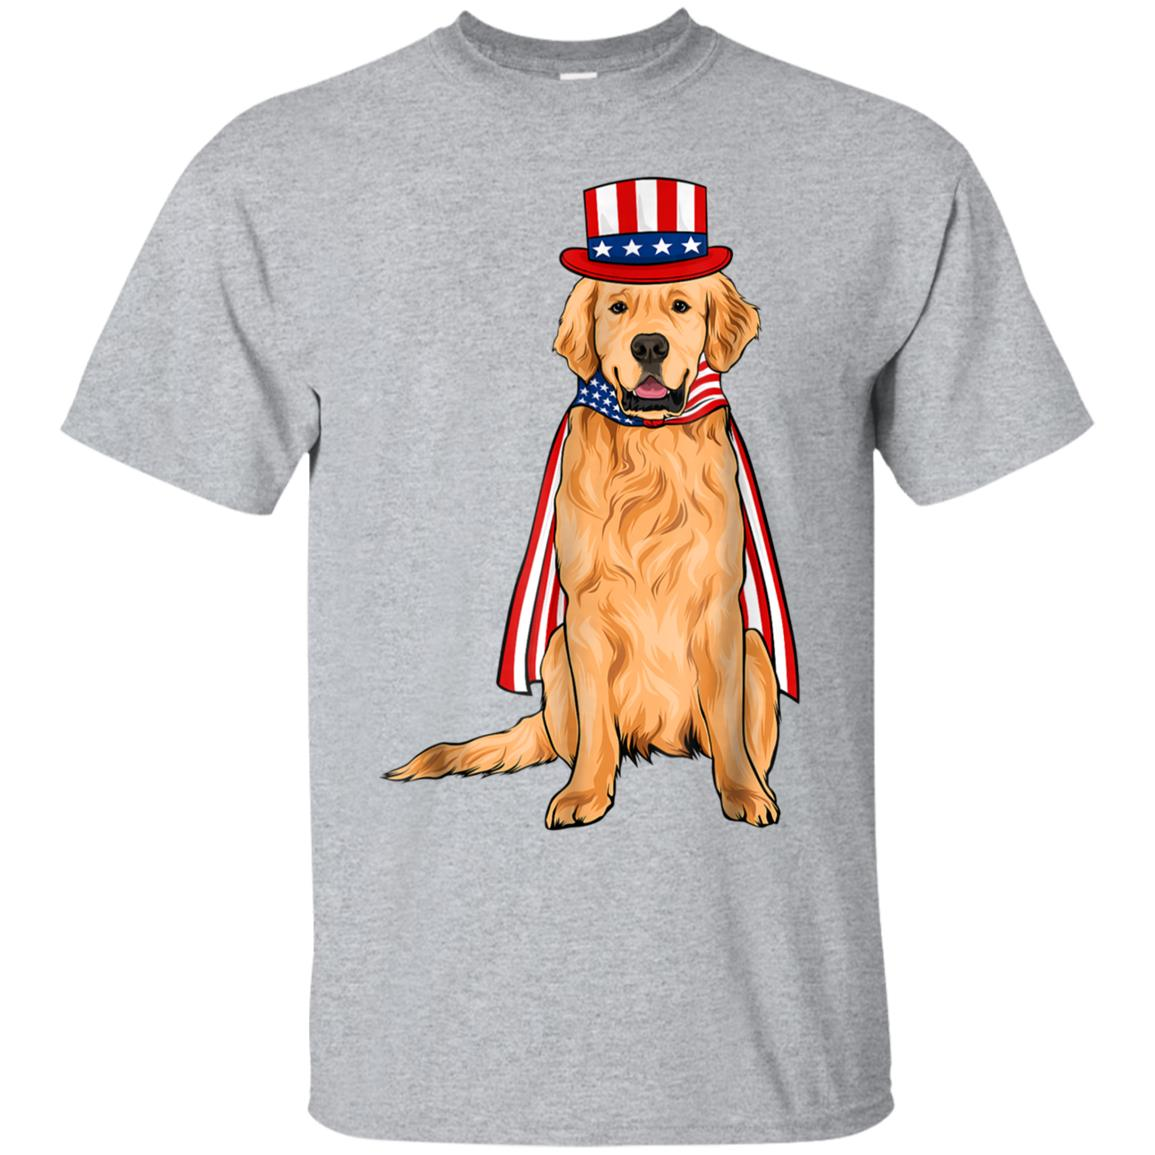 Golden Retriever Dog Shirt 4th of July USA America Gift 99promocode